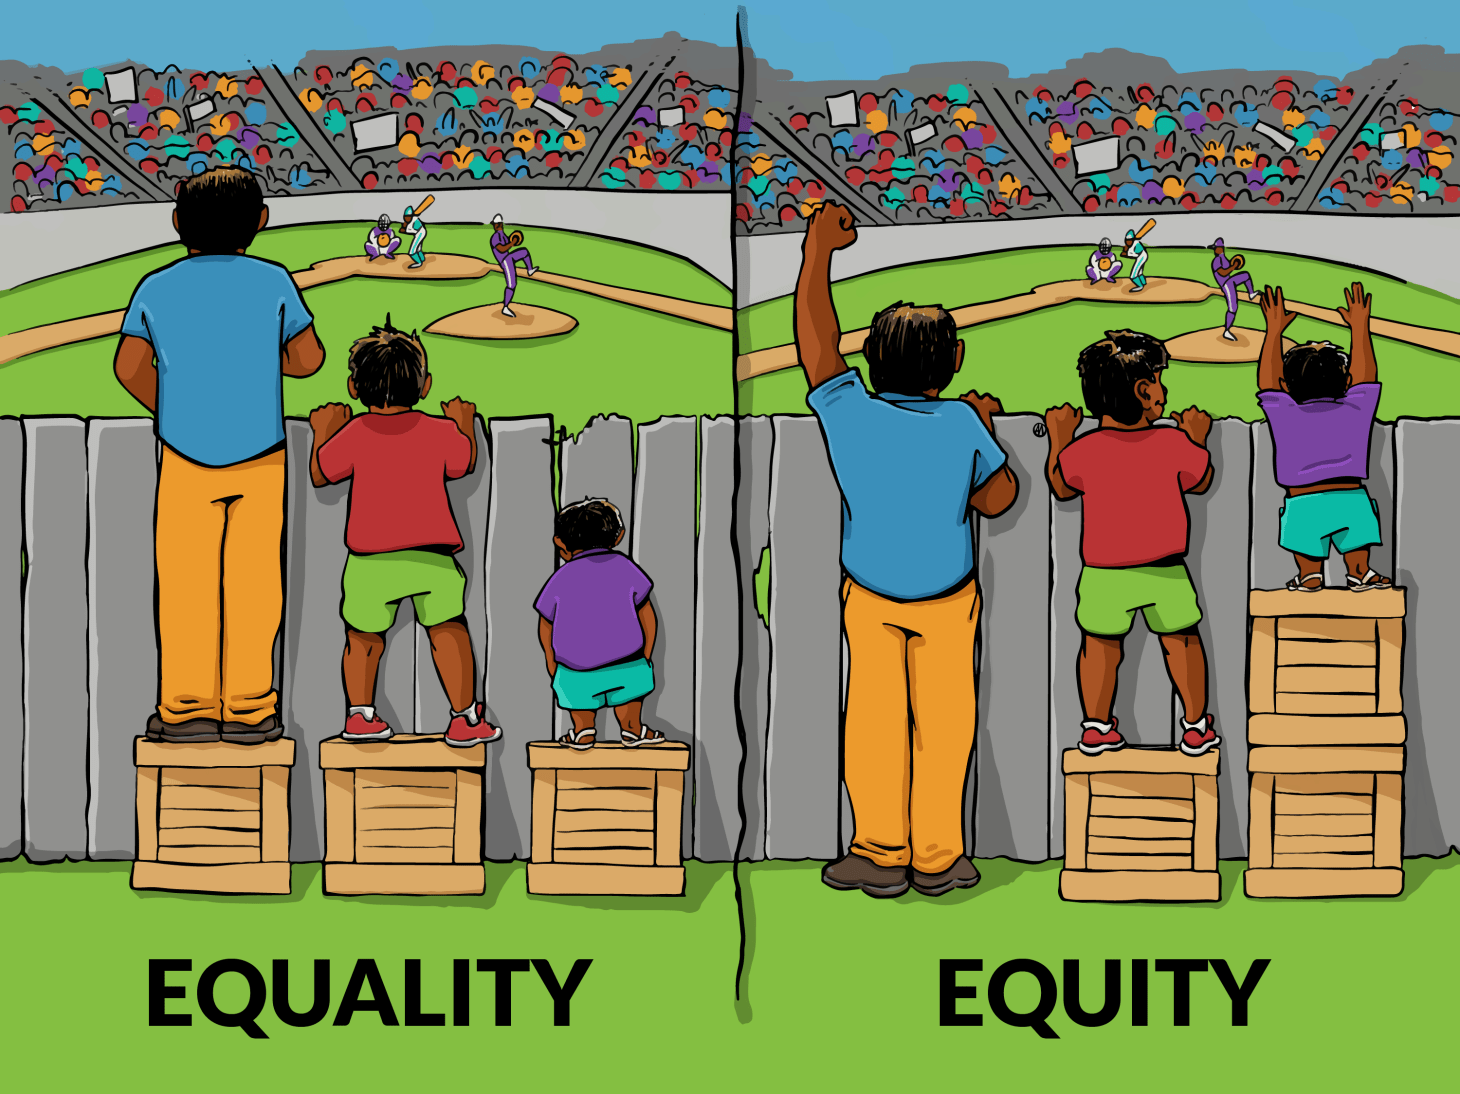 Image of Equality vs Equity